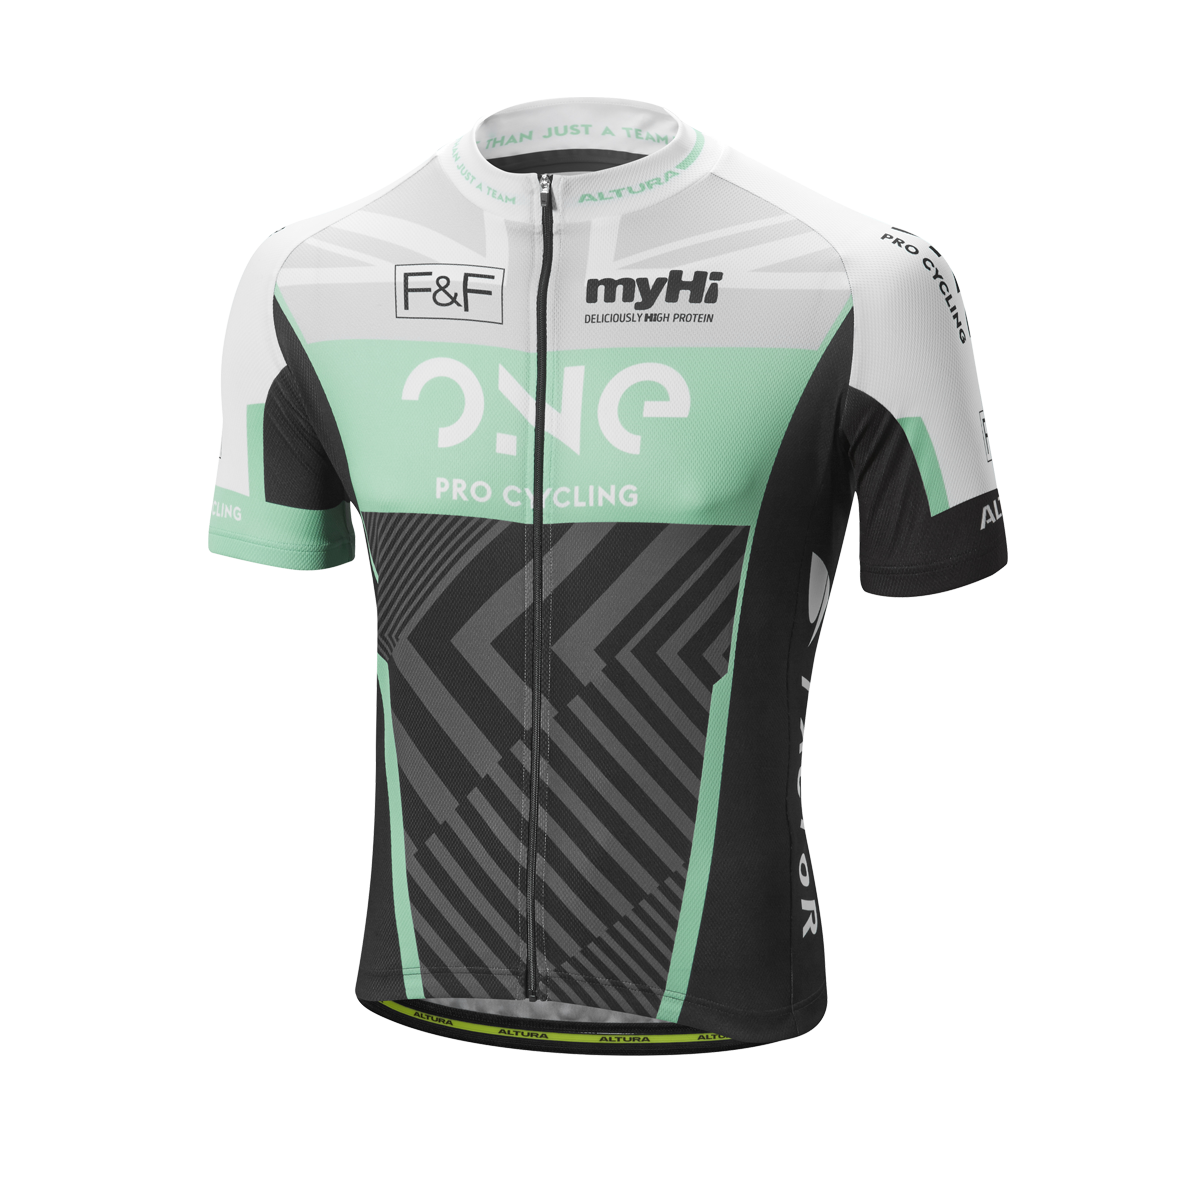 ALTURA ONE PRO CYCLING TEAM SHORT SLEEVE JERSEY 2016: ONE PRO CYCLING TEAM S